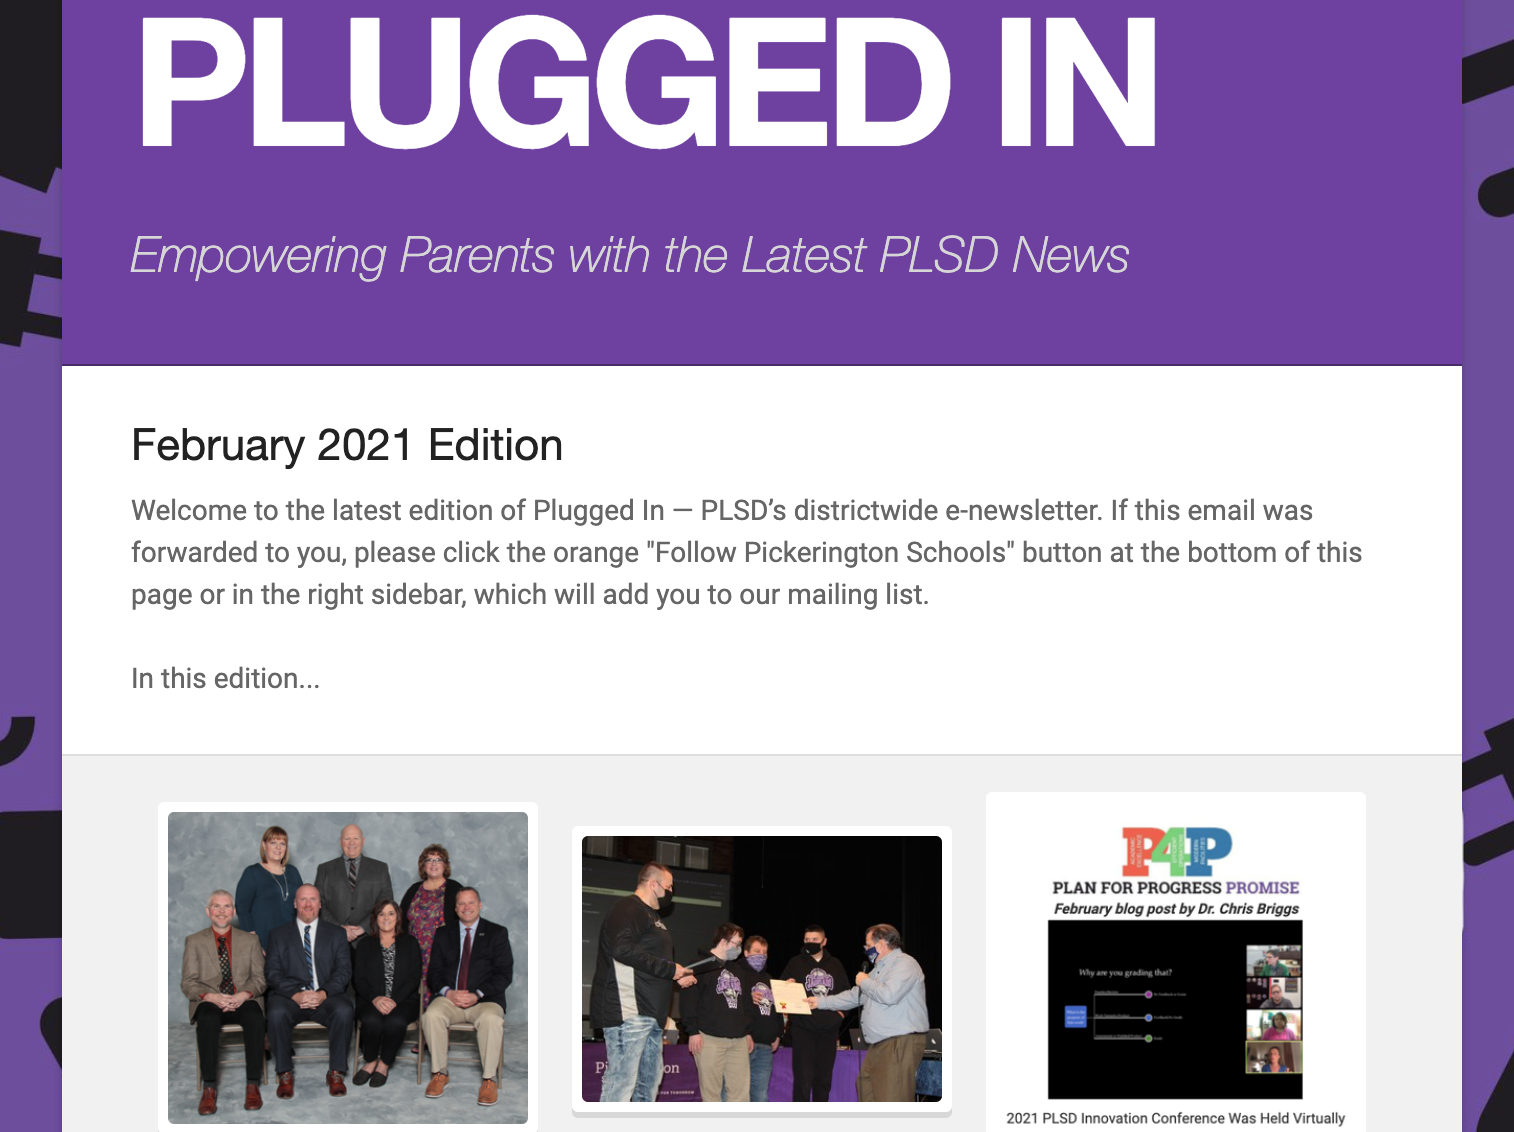 Feb. Plugged In Newsletter image